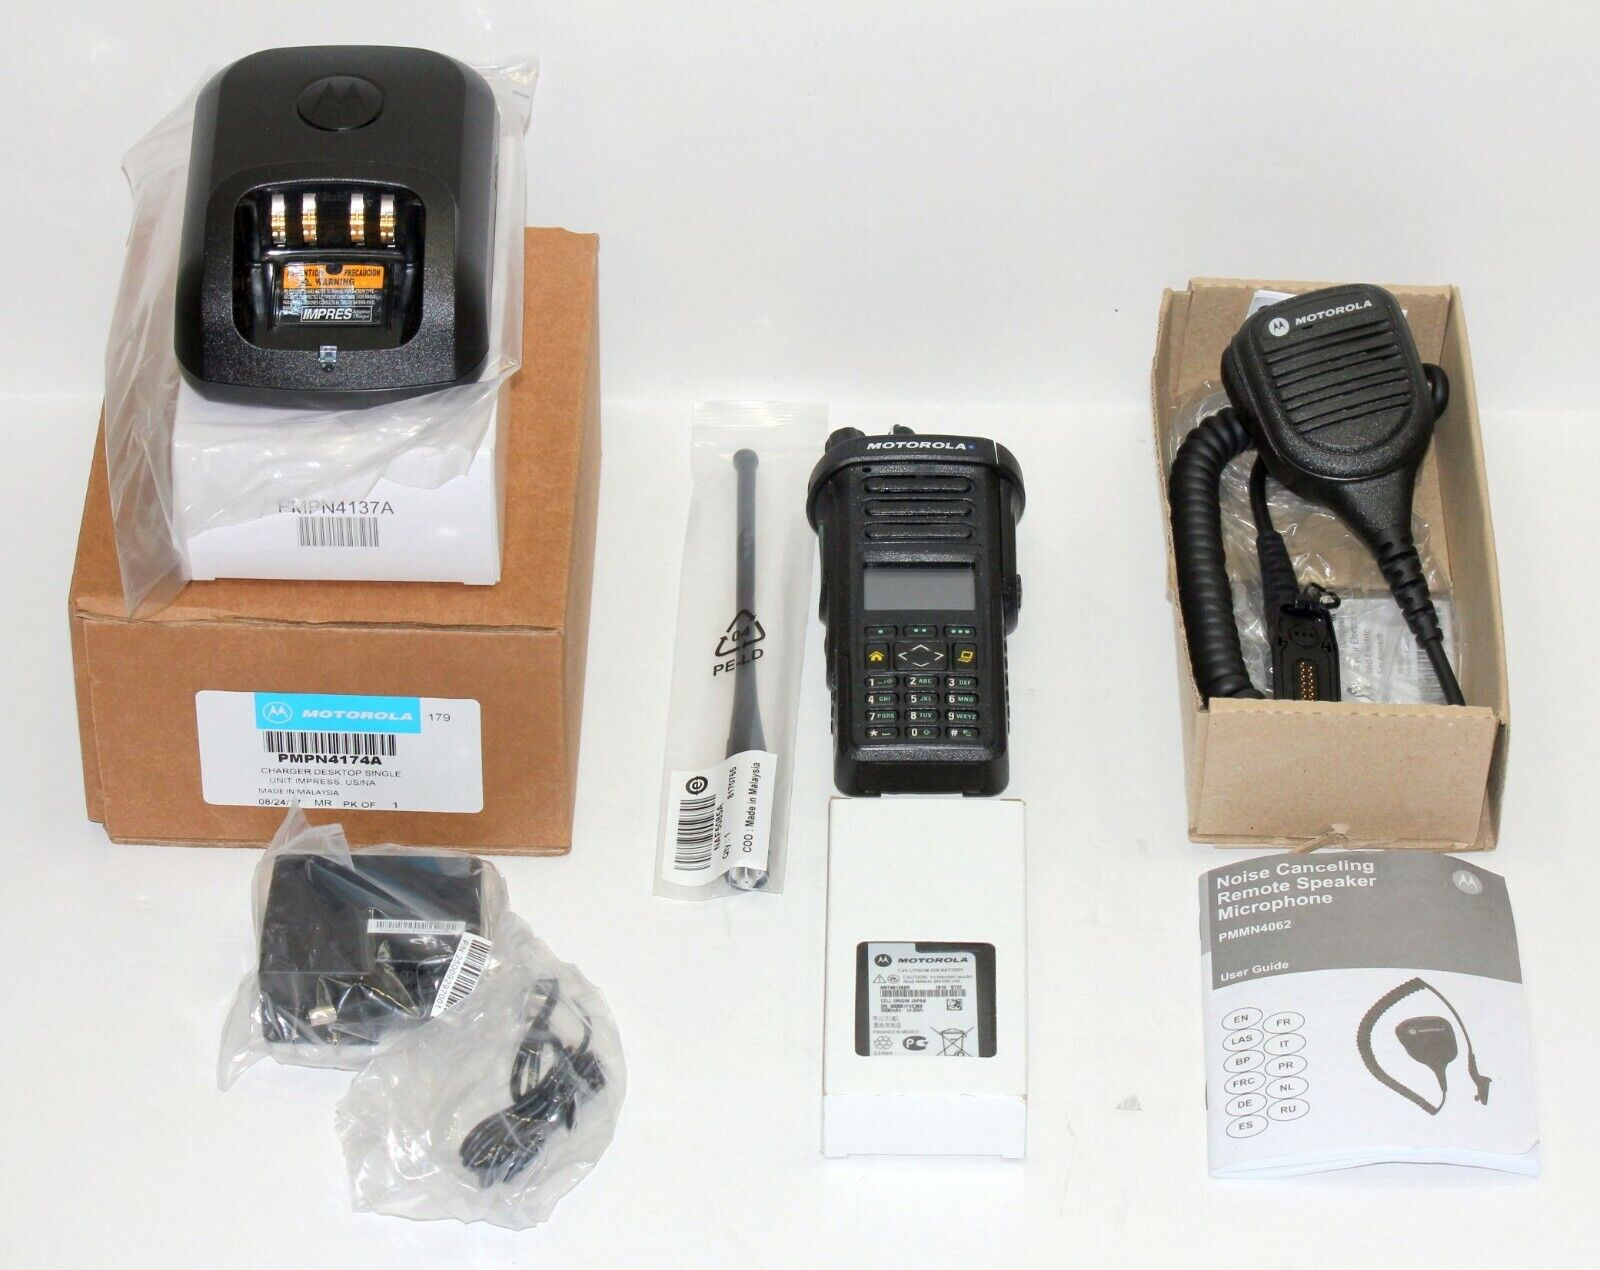 TESTED MOTOROLA APX APX4000 DIGITAL RADIO 700/800 MHZ P25 TDMA  BLUETOOTH AES . Available Now for 1659.99